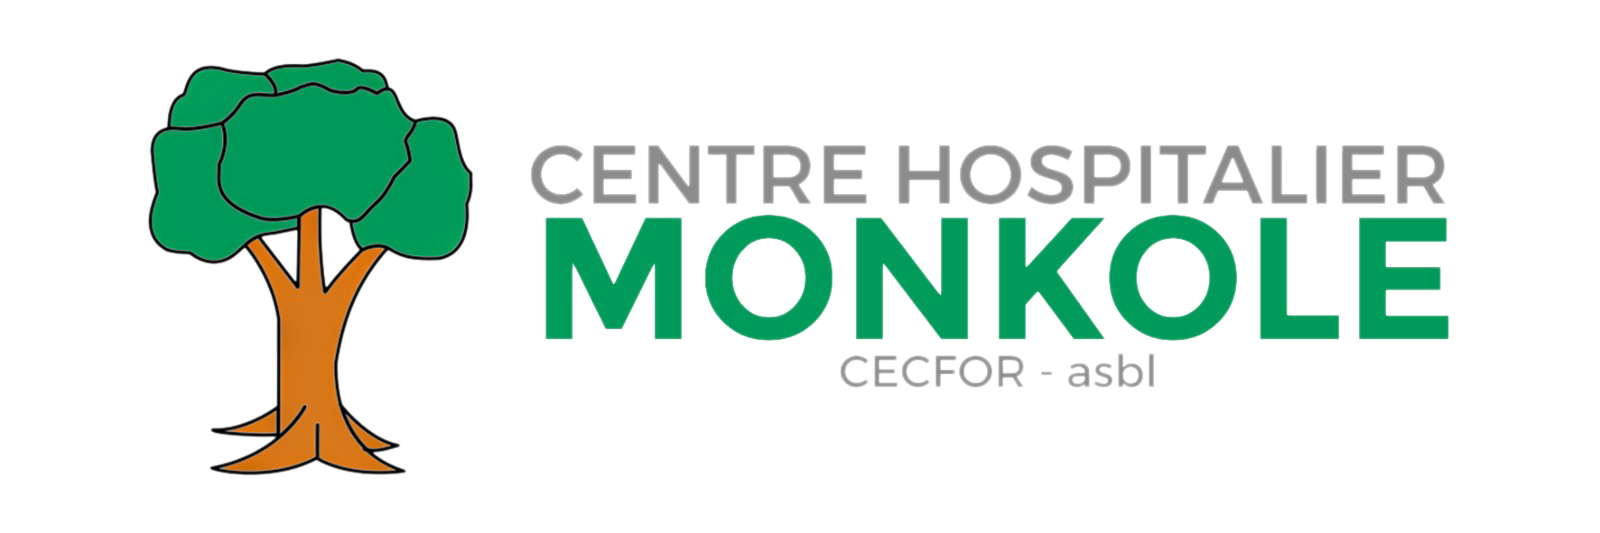 official_logo_monkole